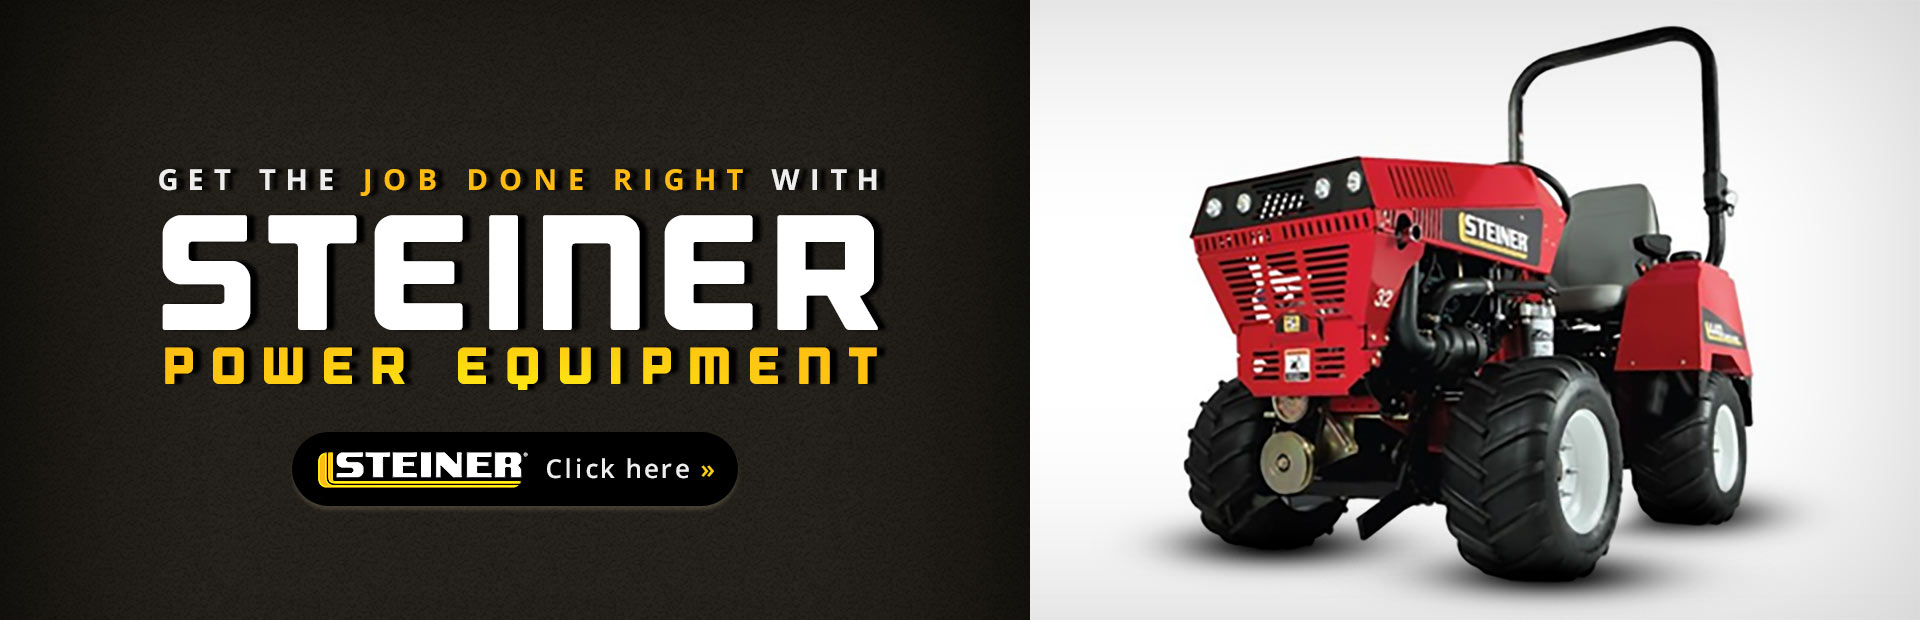 Steiner Power Equipment: Click here to view our showcase!